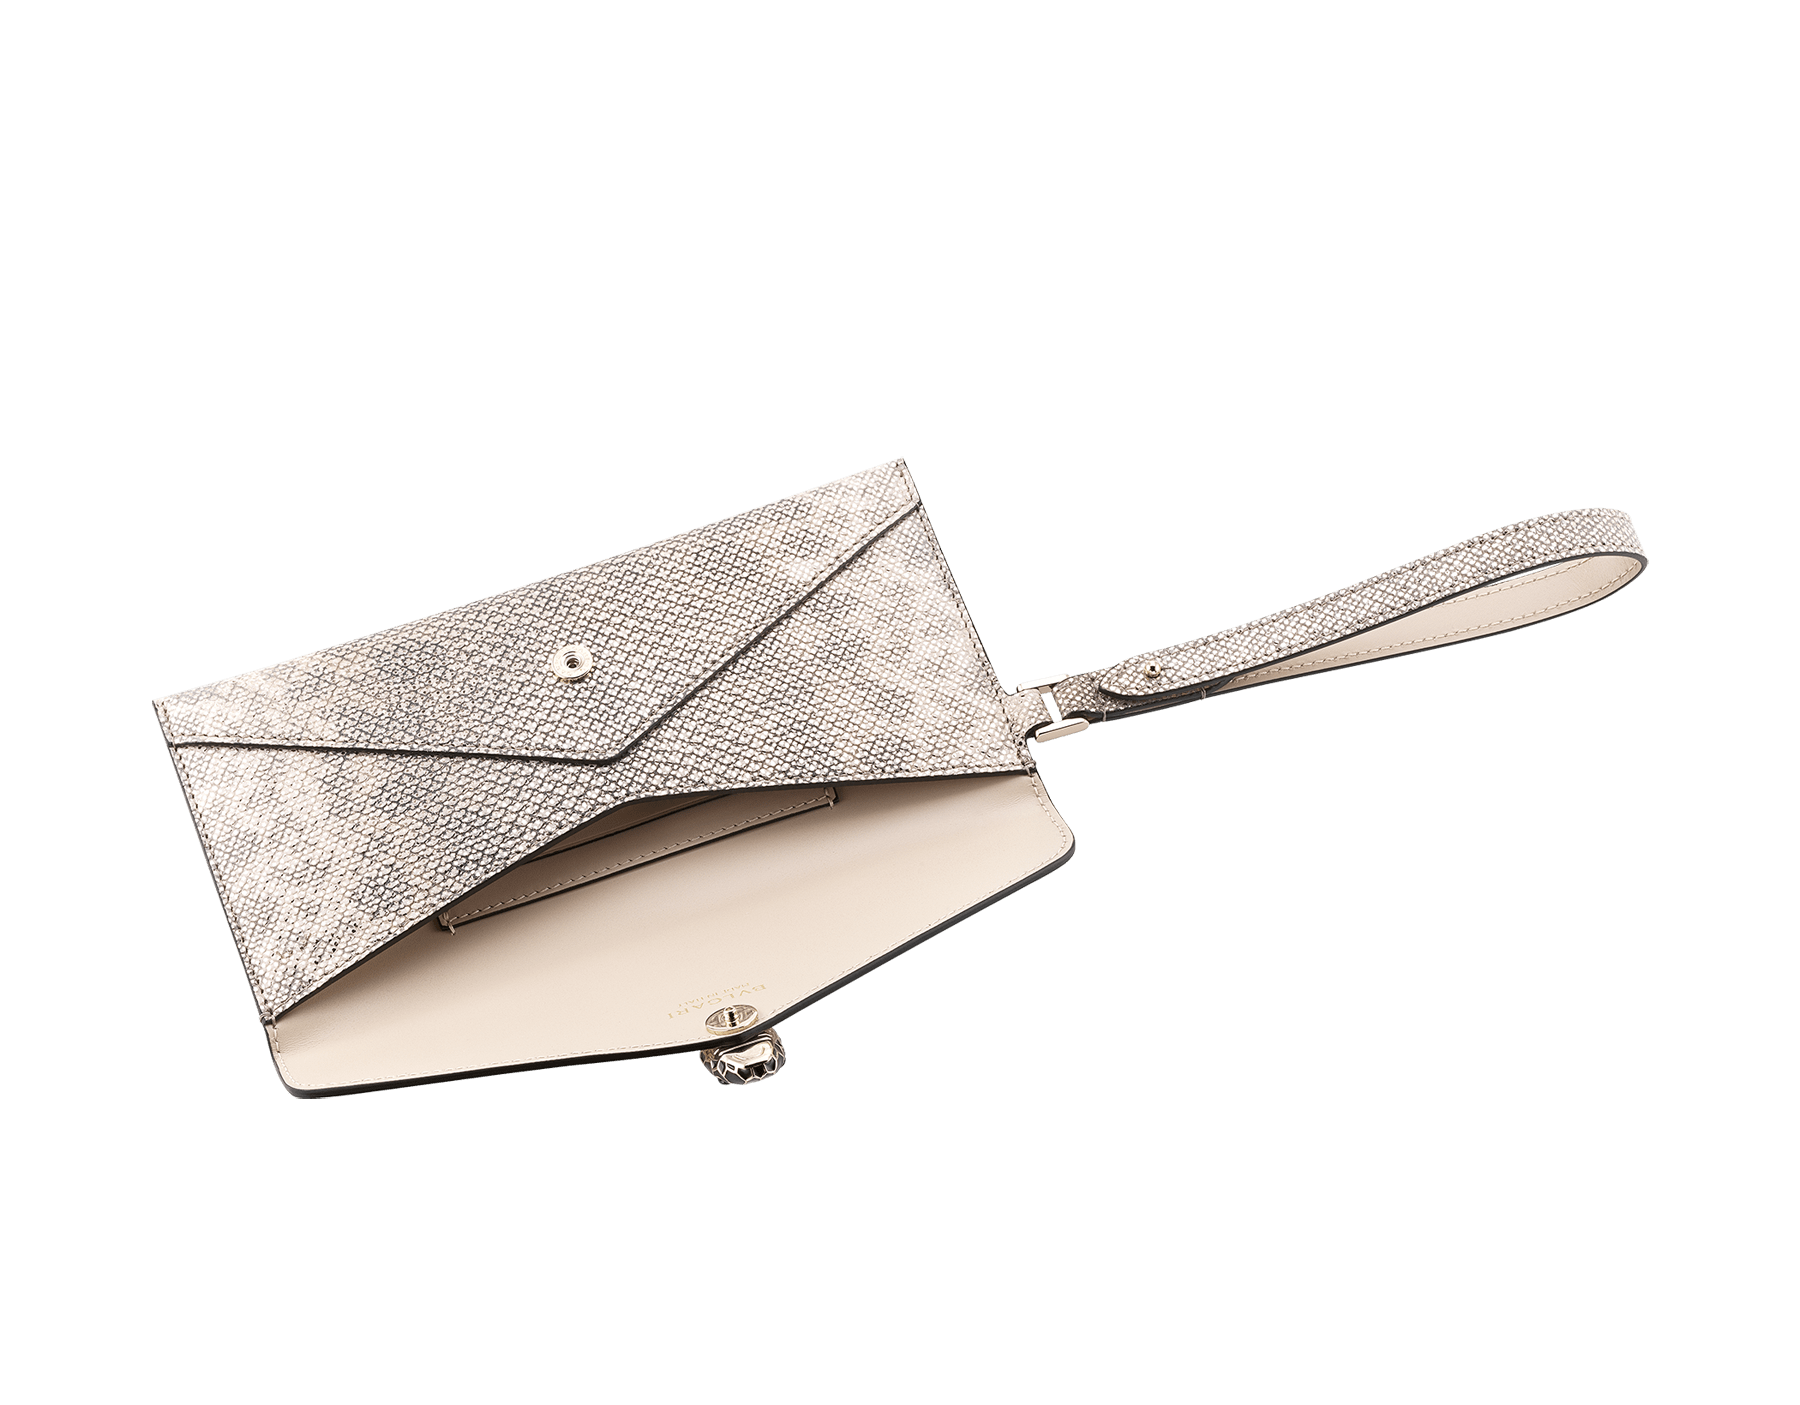 Serpenti Forever envelope case in milky opal metallic karung skin and milky opal calf leather. Iconic snakehead stud closure in black and glitter milky opal enamel, with black onyx eyes. SEA-ENVELOPE-MK image 2